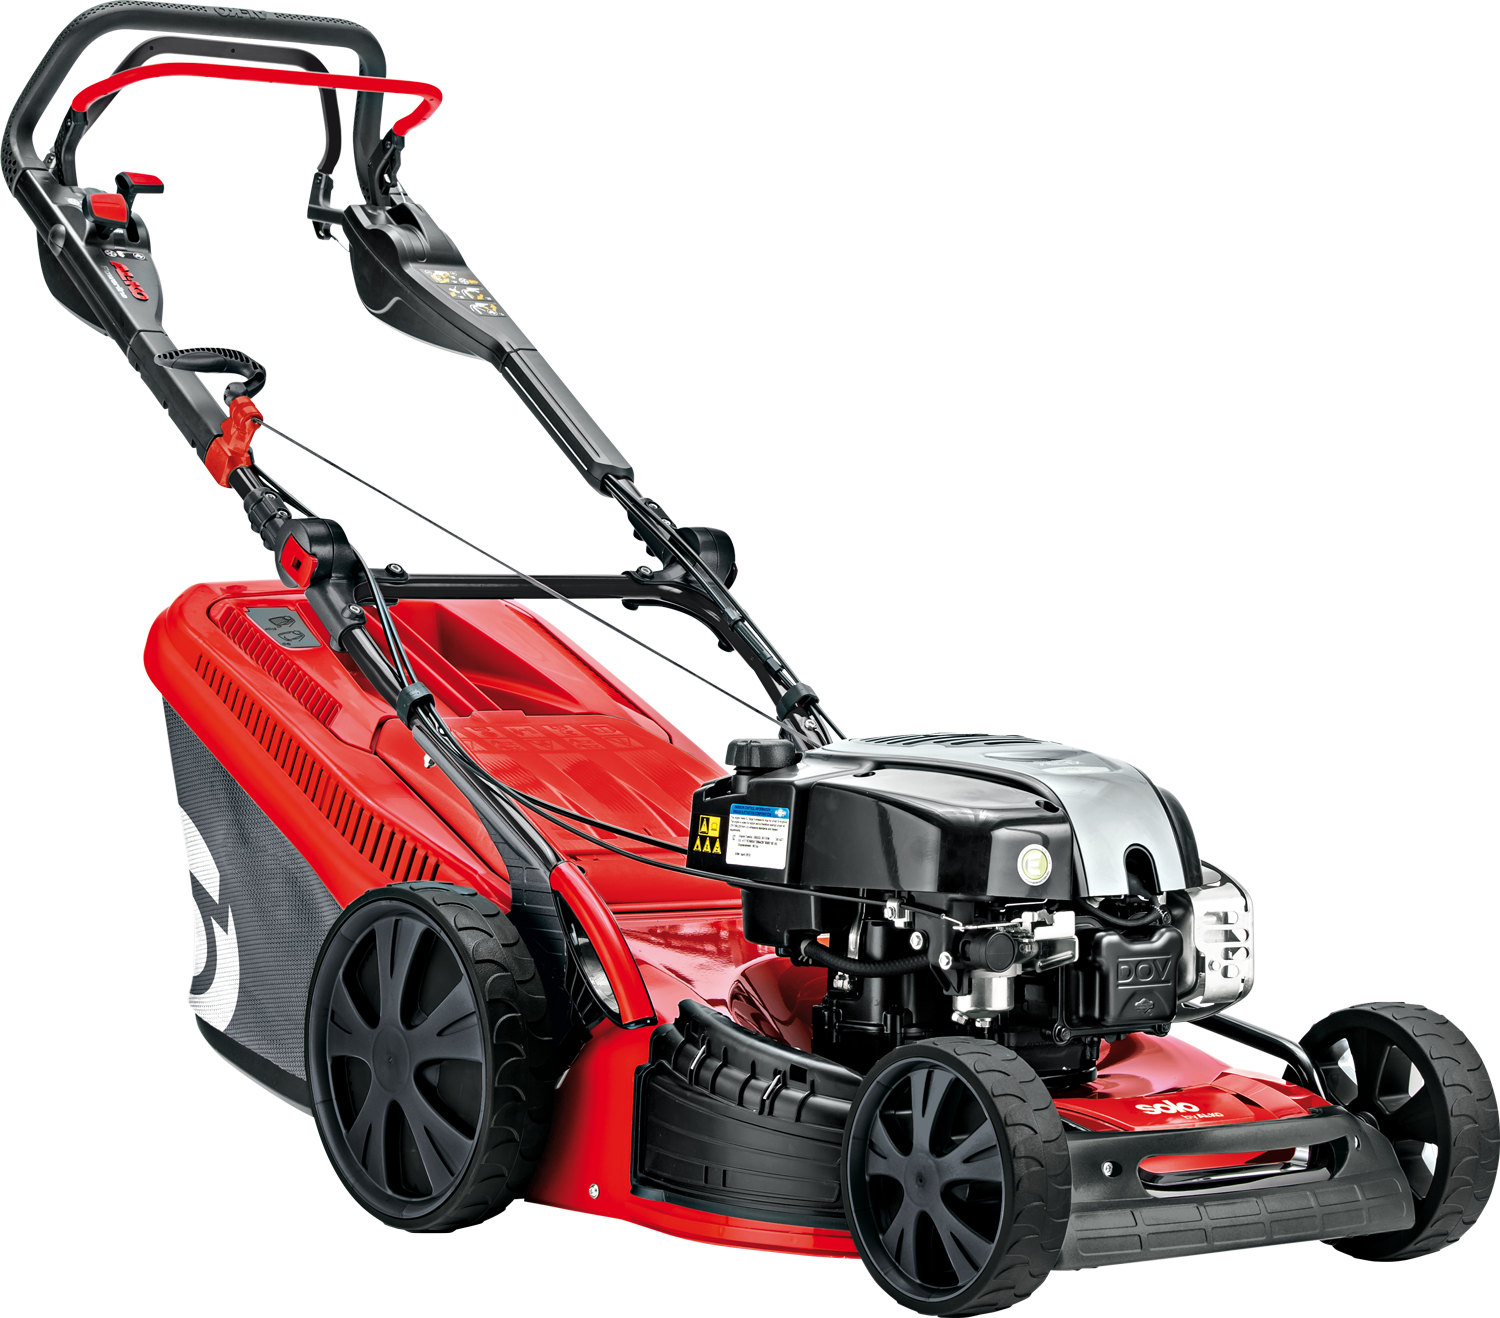 GOOD RANGE OF LAWN MOWERS IN STOCK AND READY TO MOW